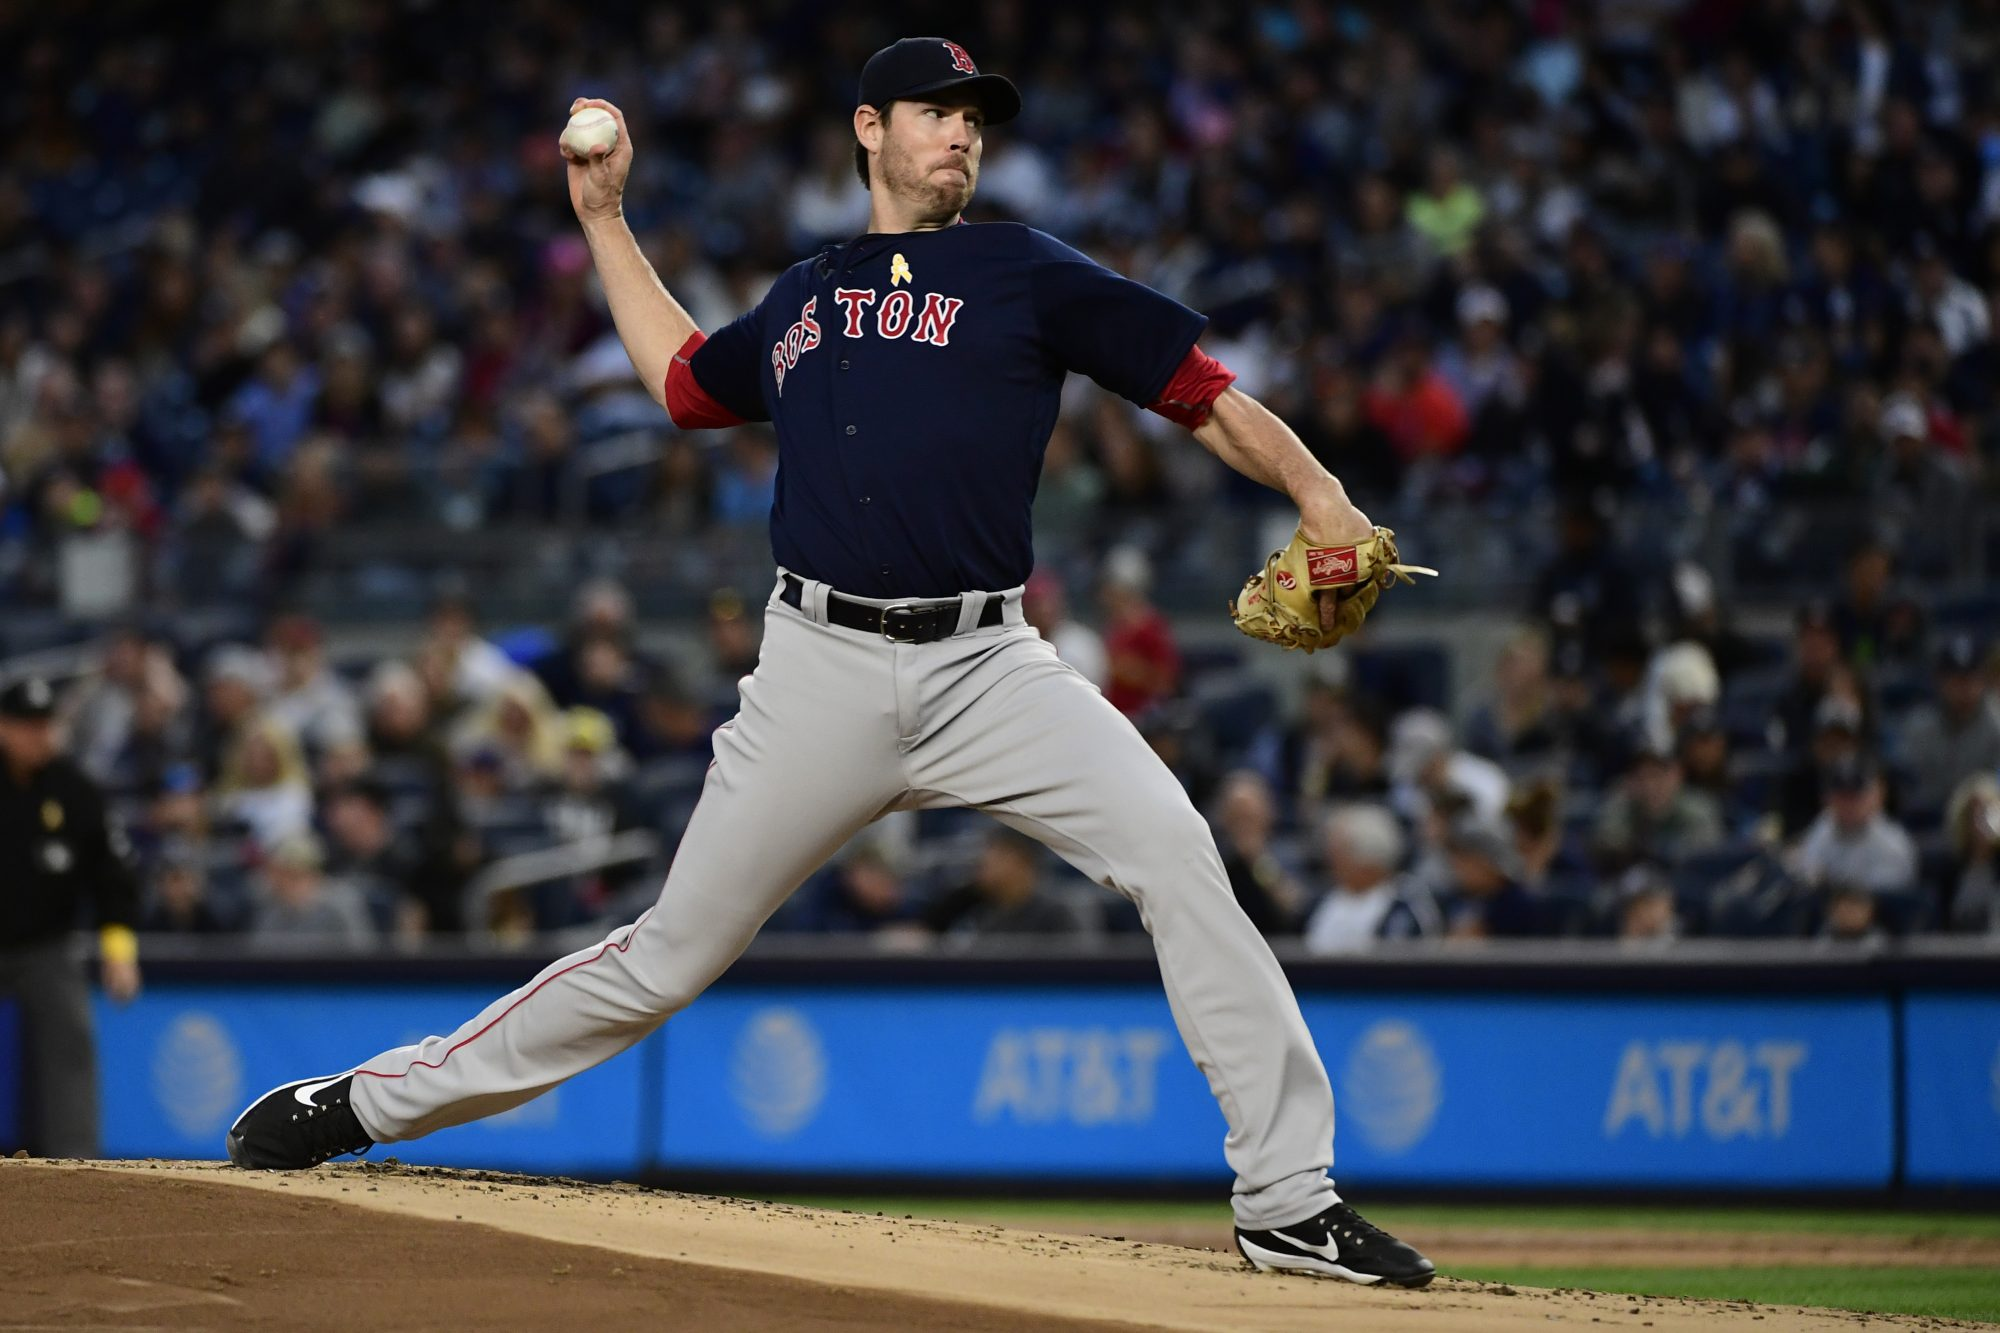 New York Yankees Can't Rally Off Doug Fister, Fall To Boston Red Sox